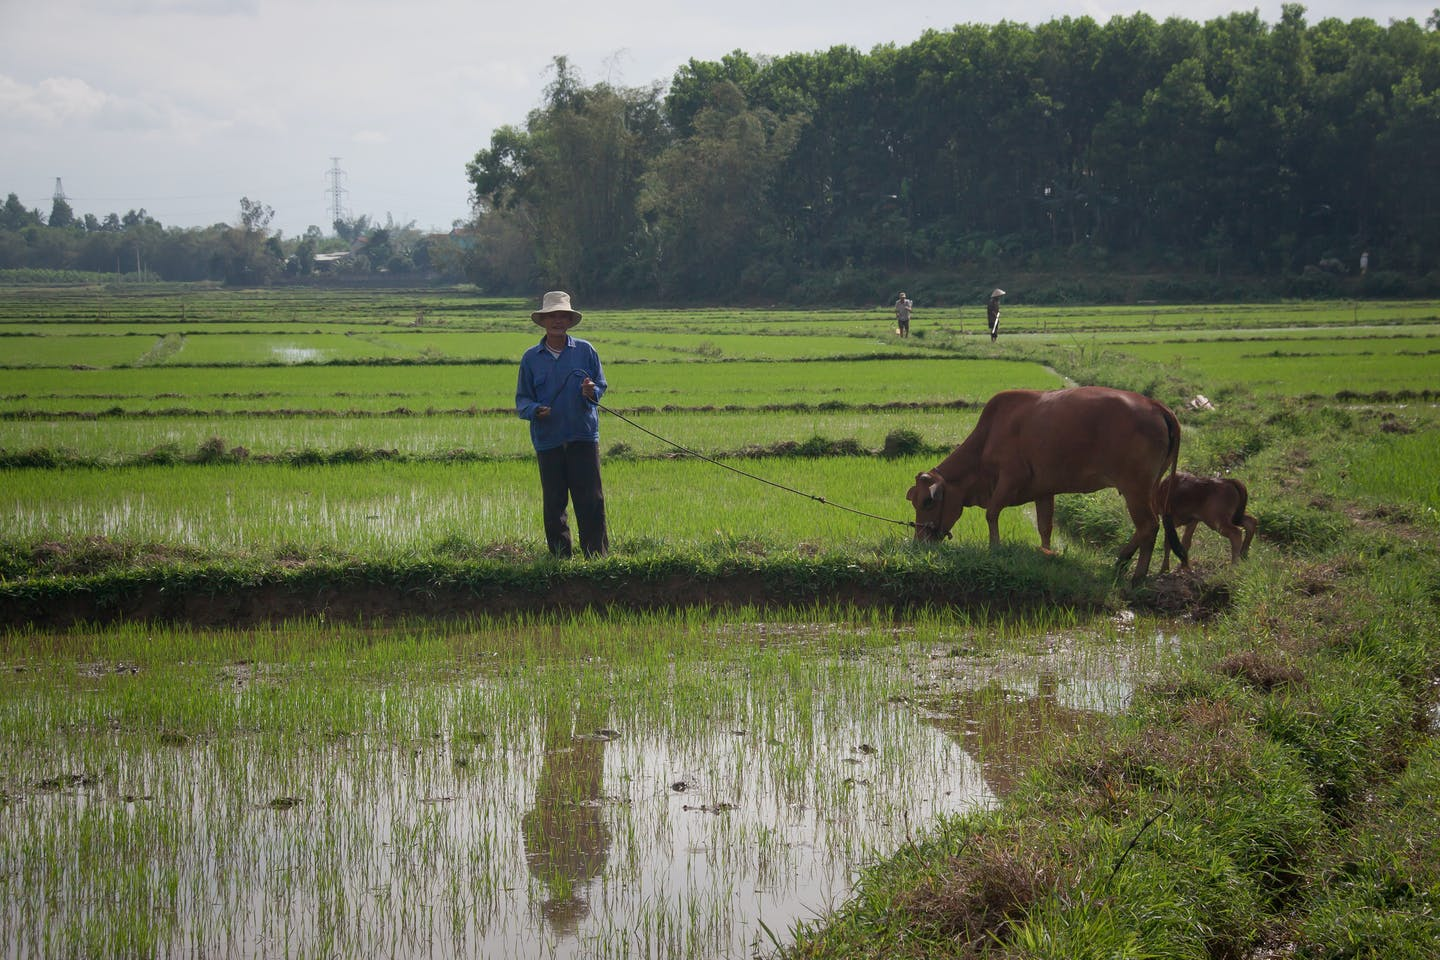 A farmer and his cows in the field in Vietnam.